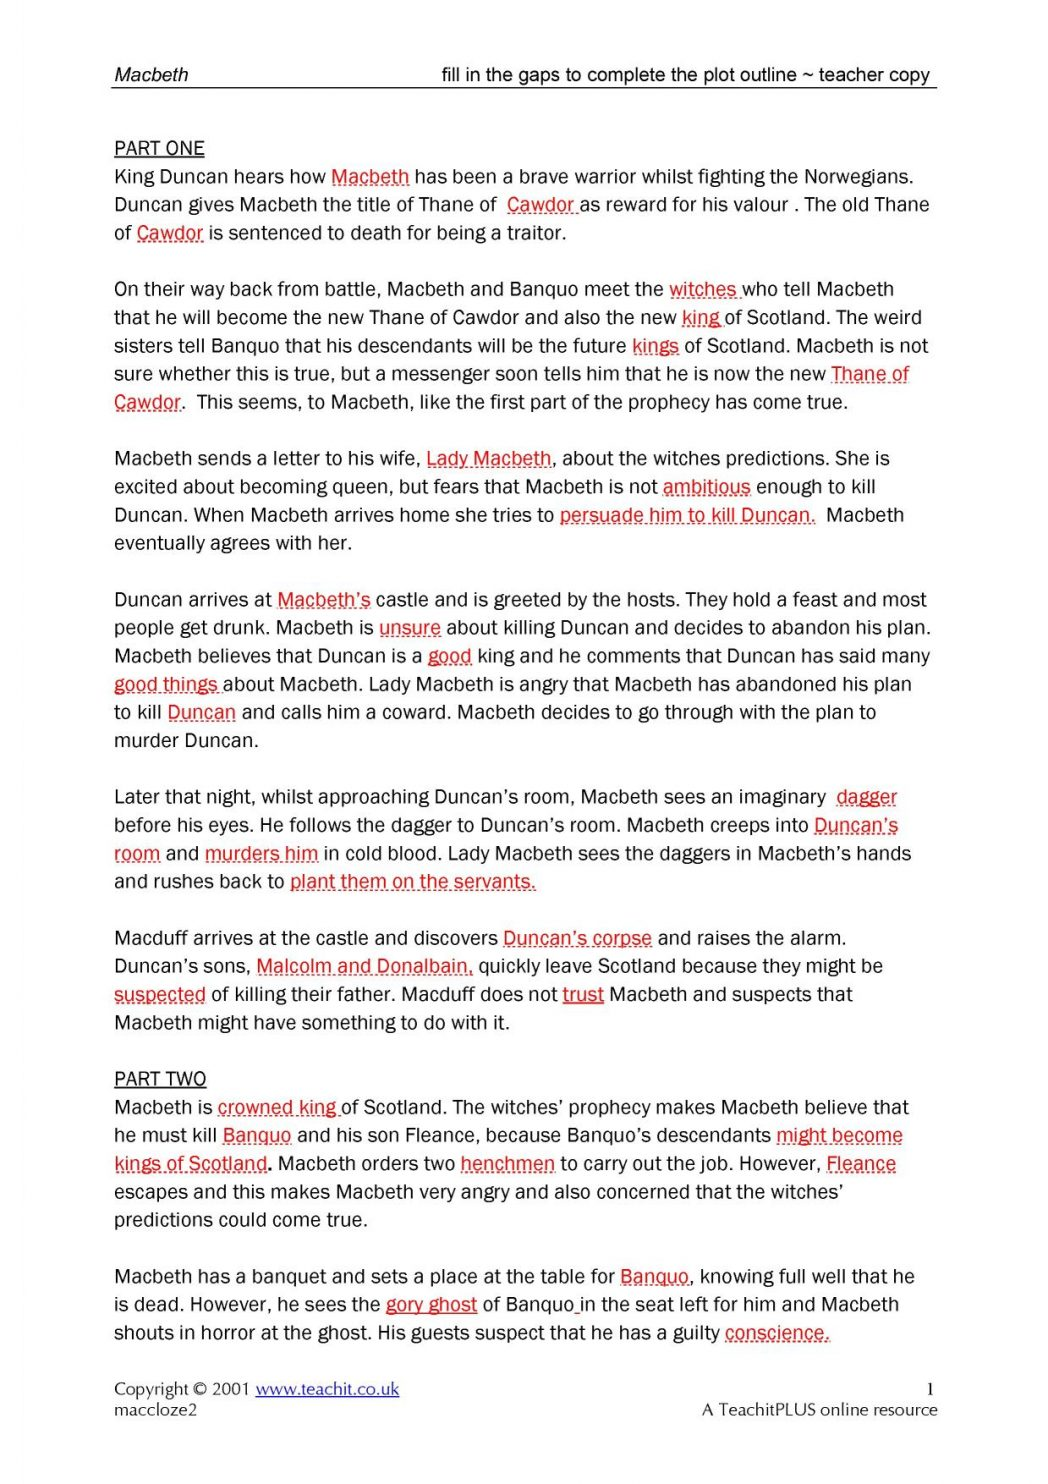 018 Essay Example Essays On Macbeth Lady Influence Writing 1048x1484 Conclusion For Best Ambition Full